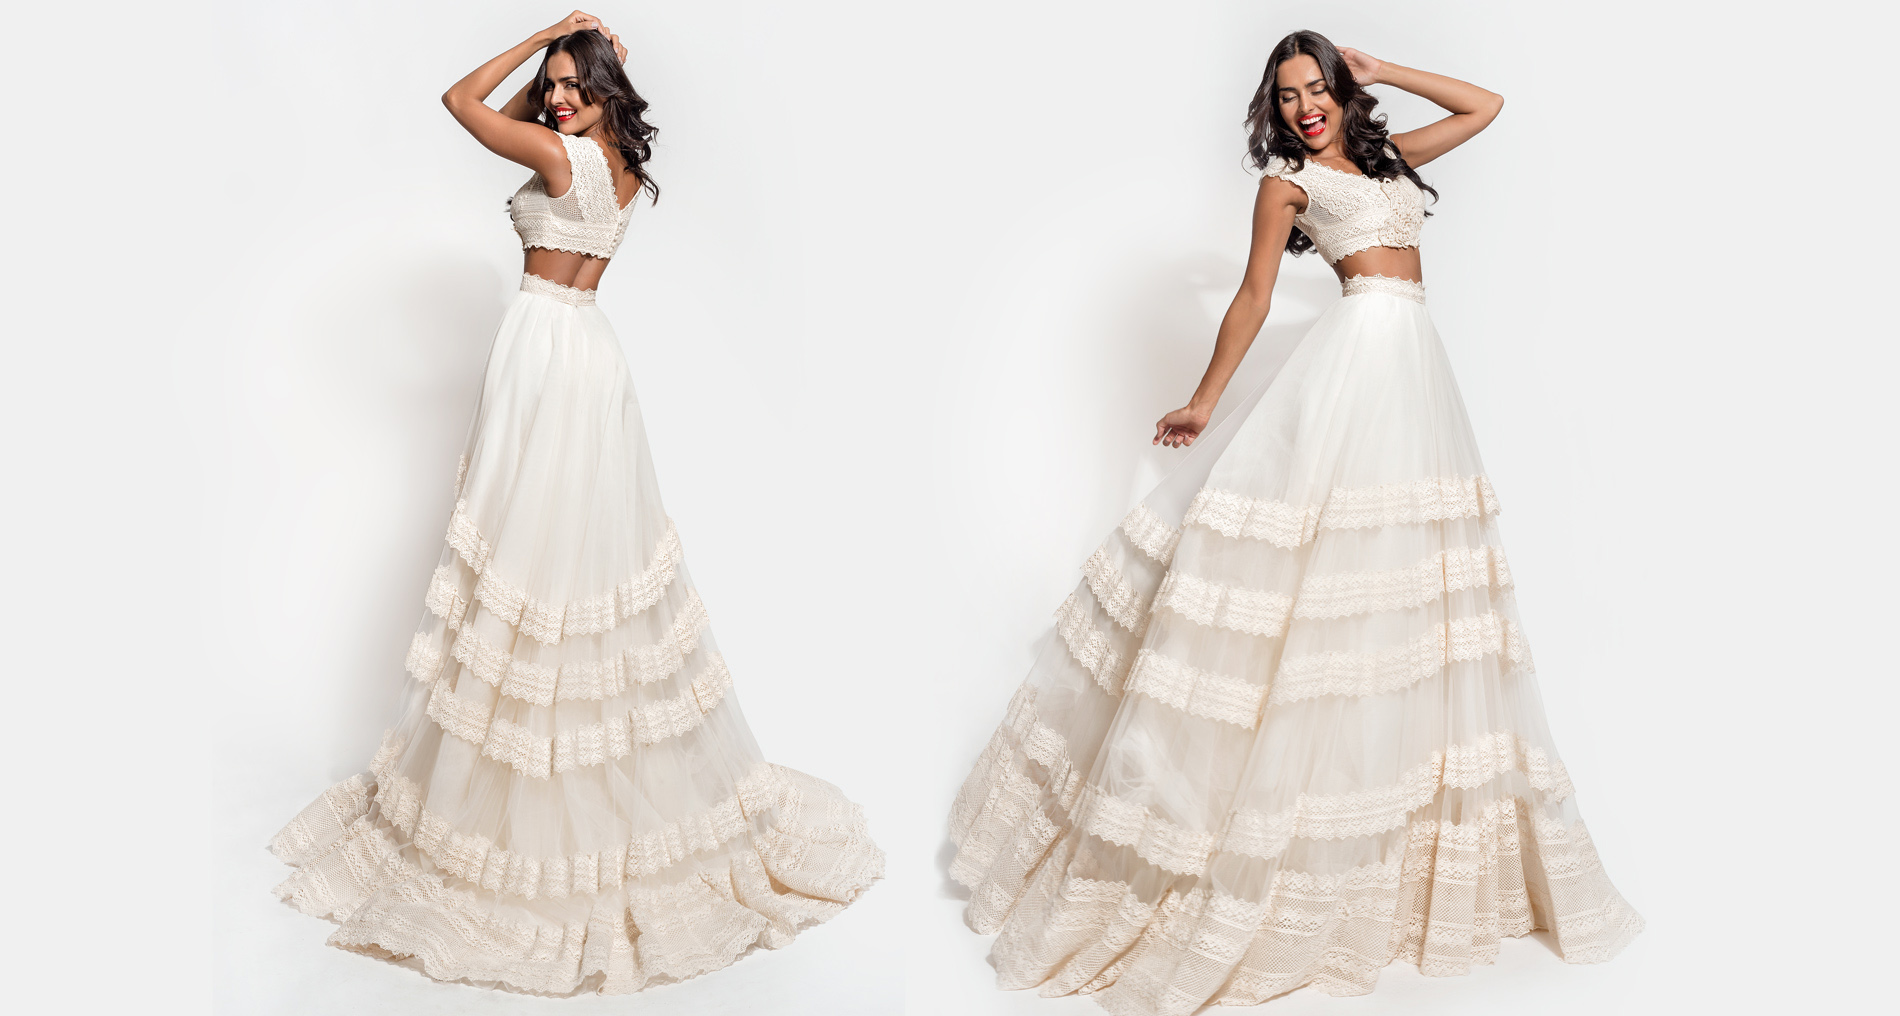 Elpis Top & Elpis Trims Skirt wedding dress from  Hellenic Vintage Essence Collection